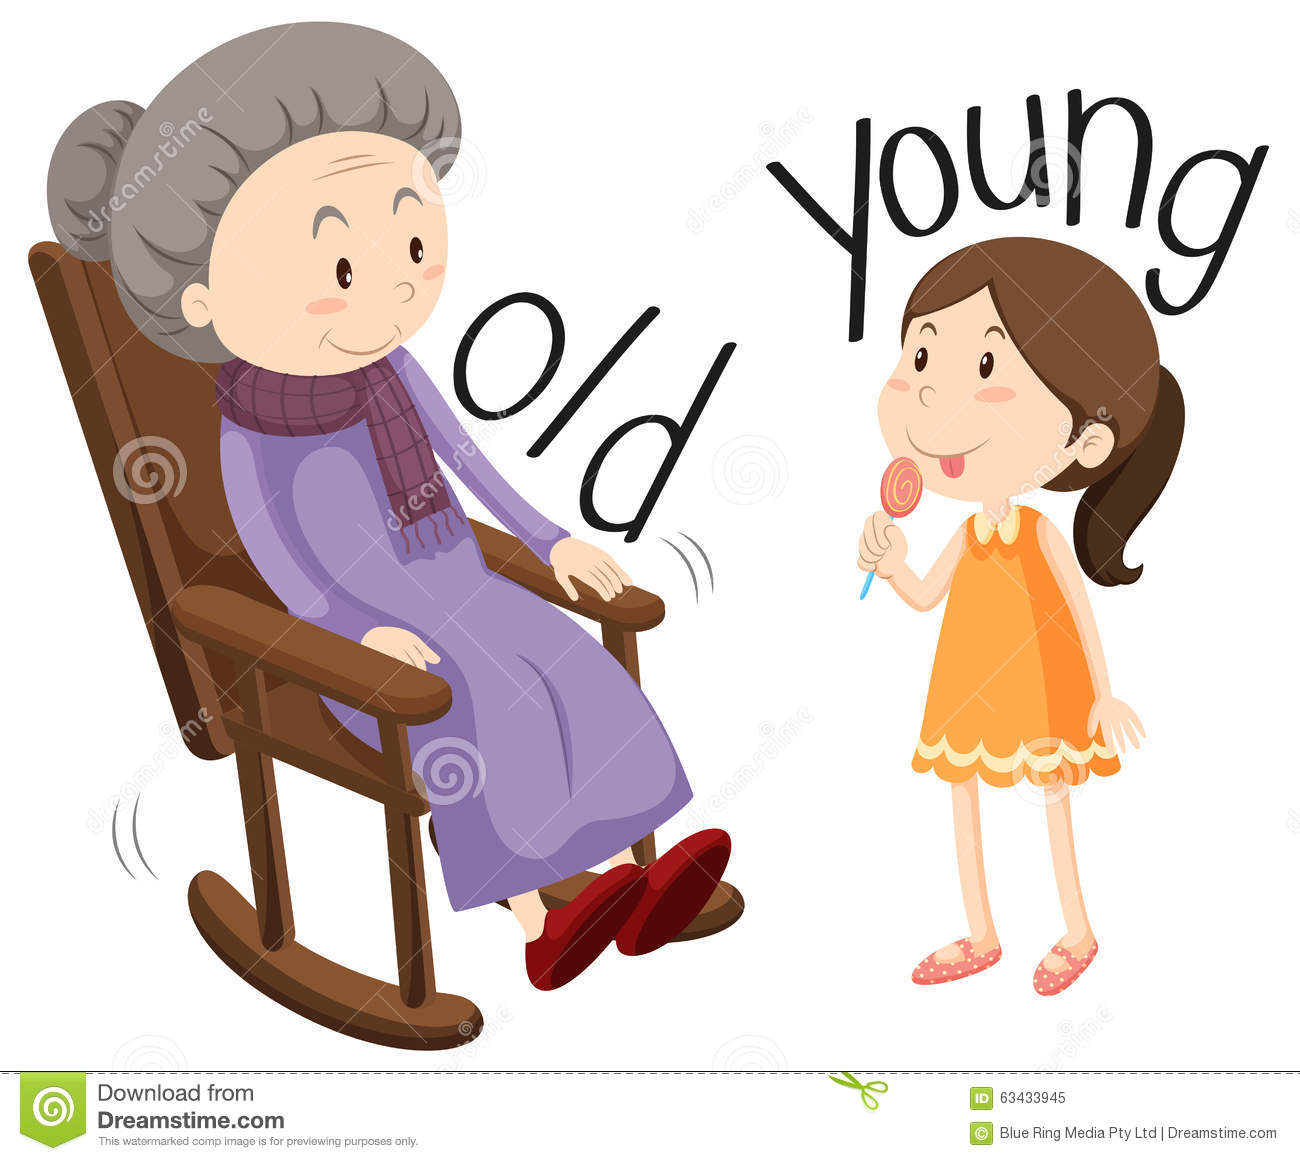 Old woman and young girl-Old woman and young girl-1